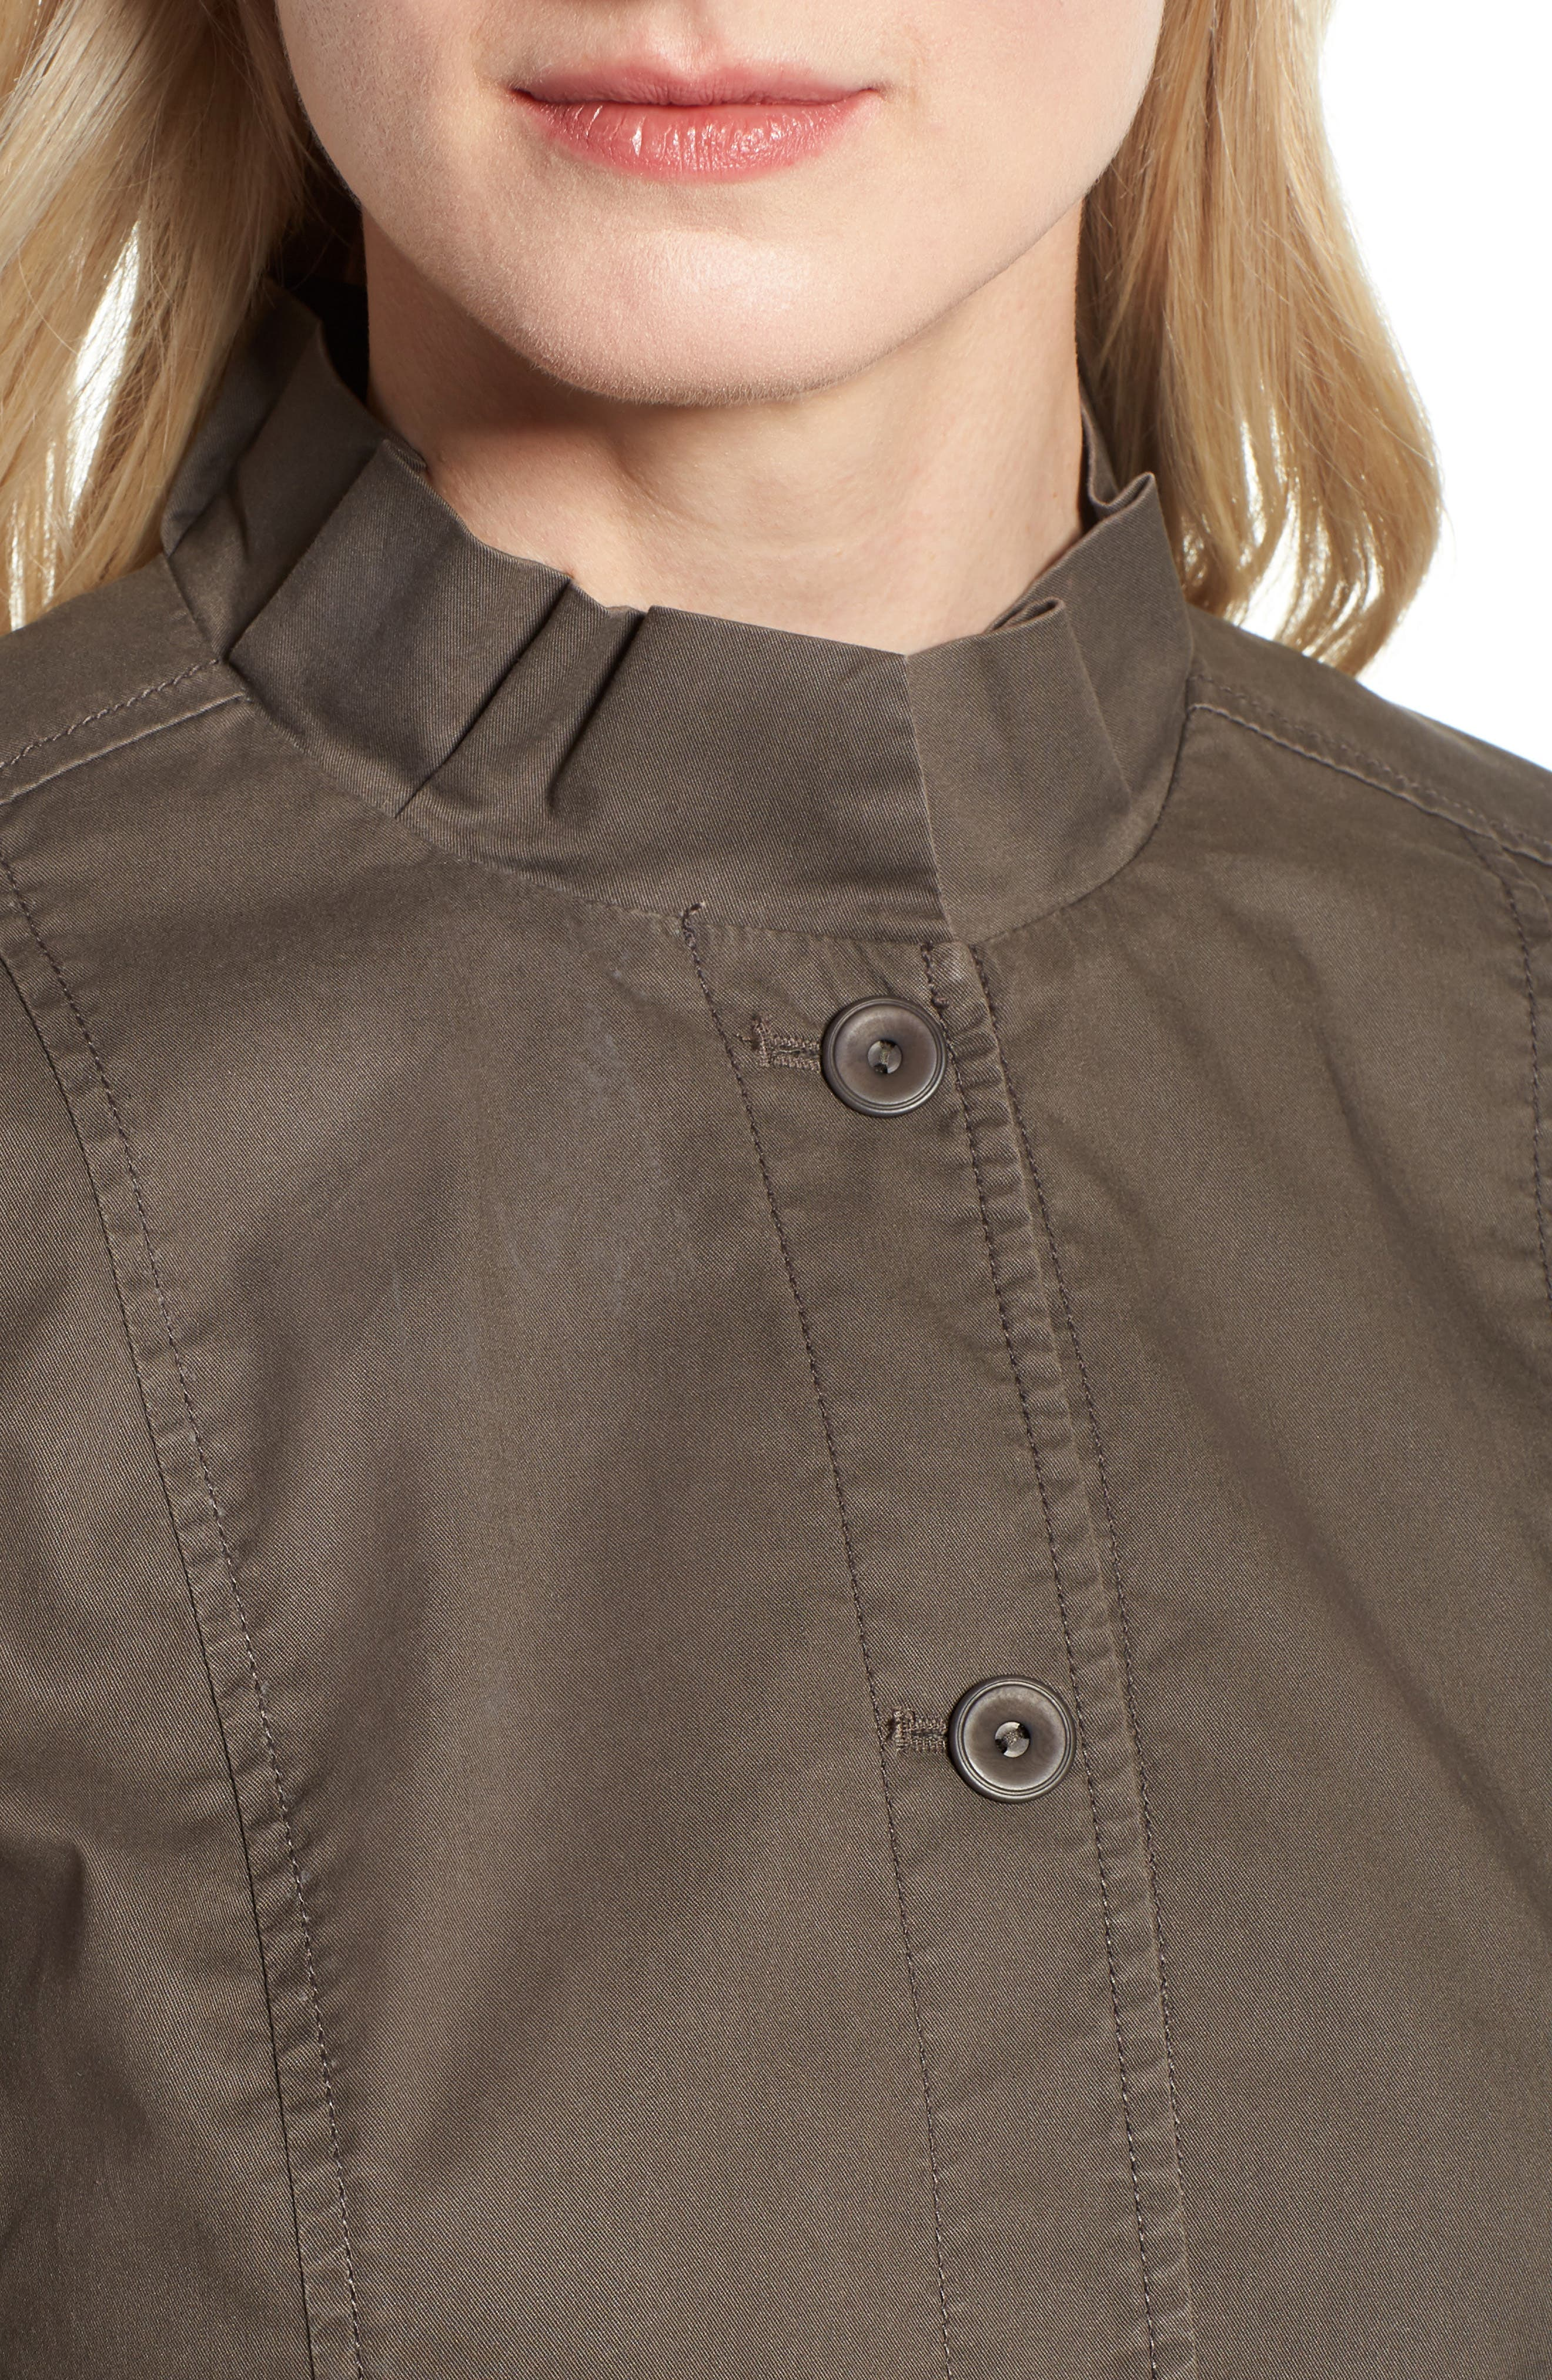 Ruffle Collar Organic Cotton Blend Jacket,                             Alternate thumbnail 4, color,                             245